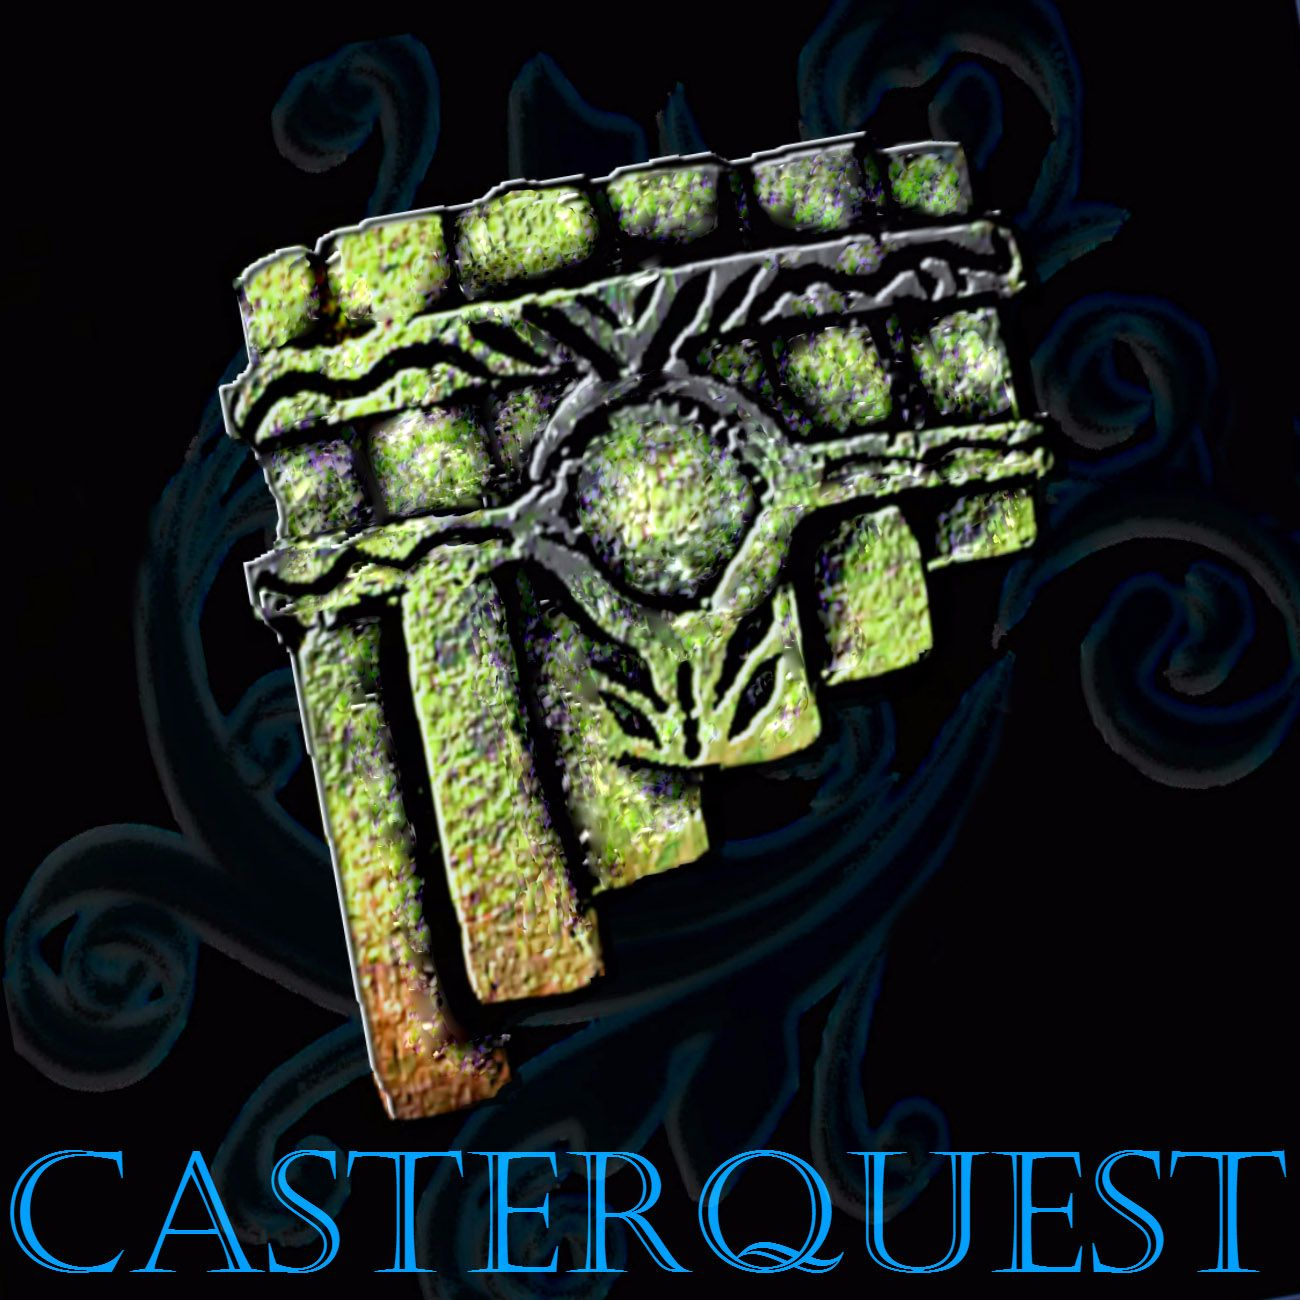 CasterQuest: The Kingkiller Chronicle Book Club